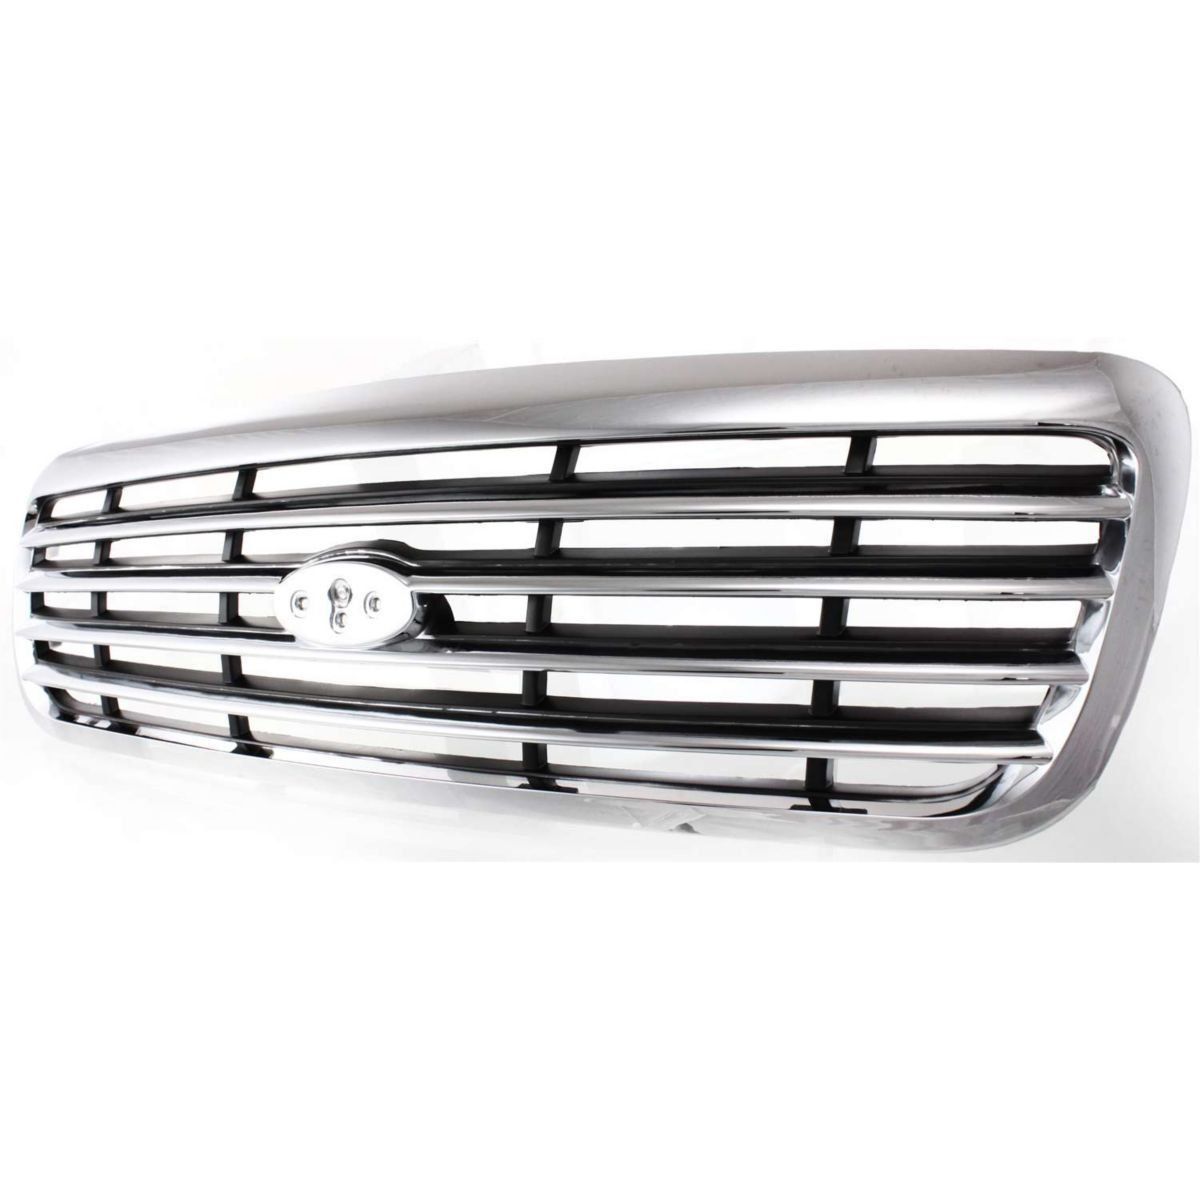 Diften 102-A2286-X01 - New Grille Assembly Chrome Ford Crown Victoria 2011 99 1999 FO1200346 6W7Z8200BA